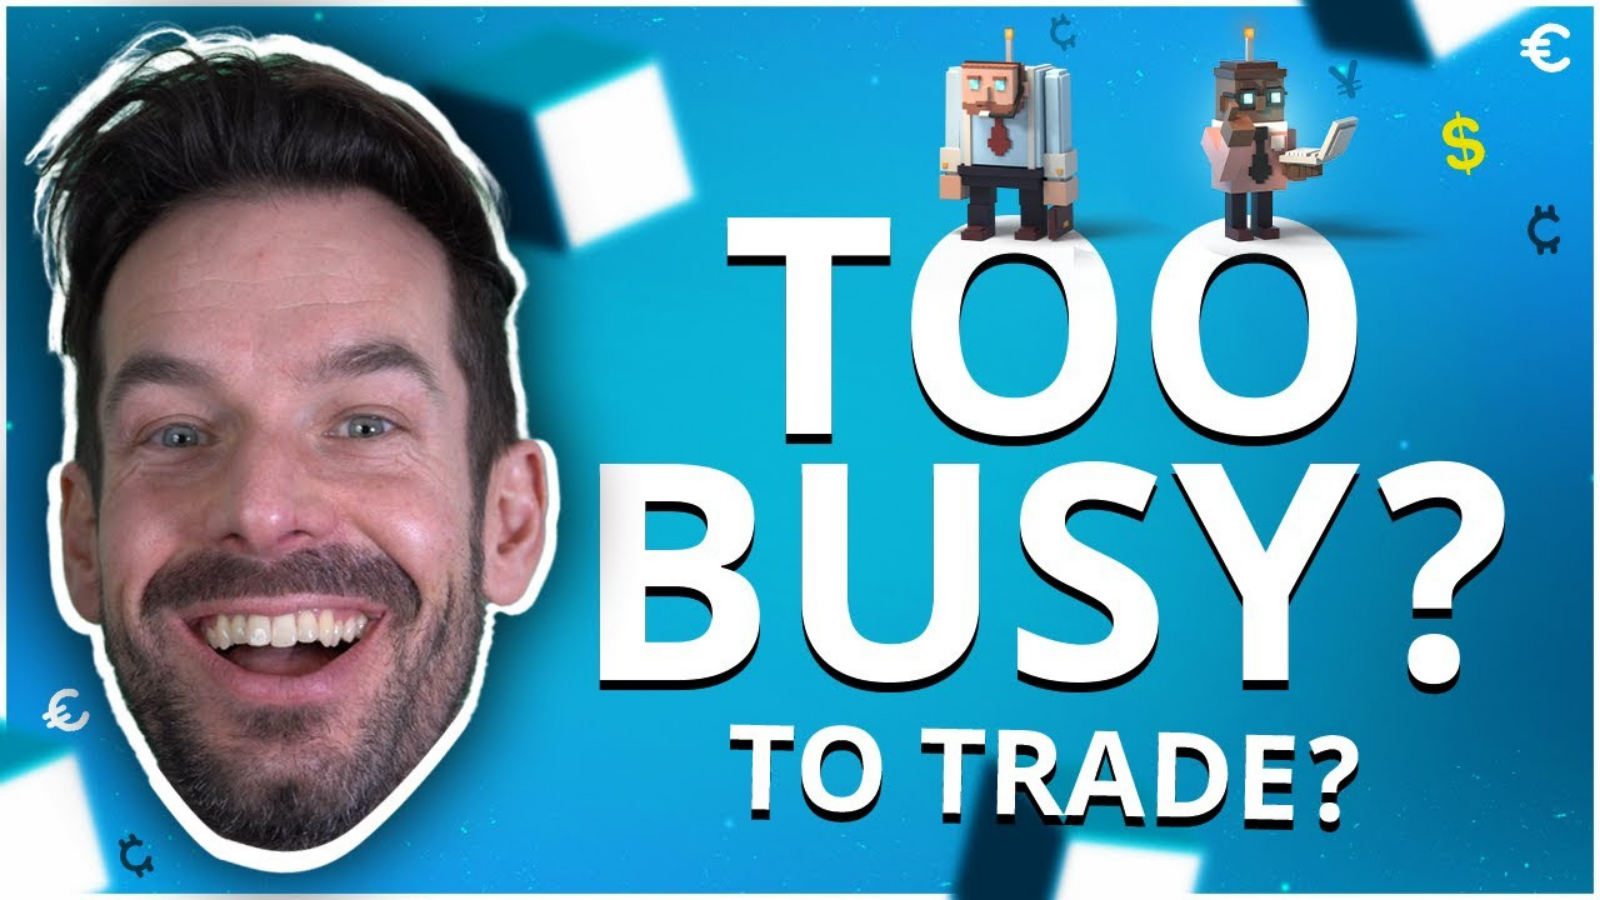 BOTS Blog: Too busy to trade yourself? Simon has the solution.